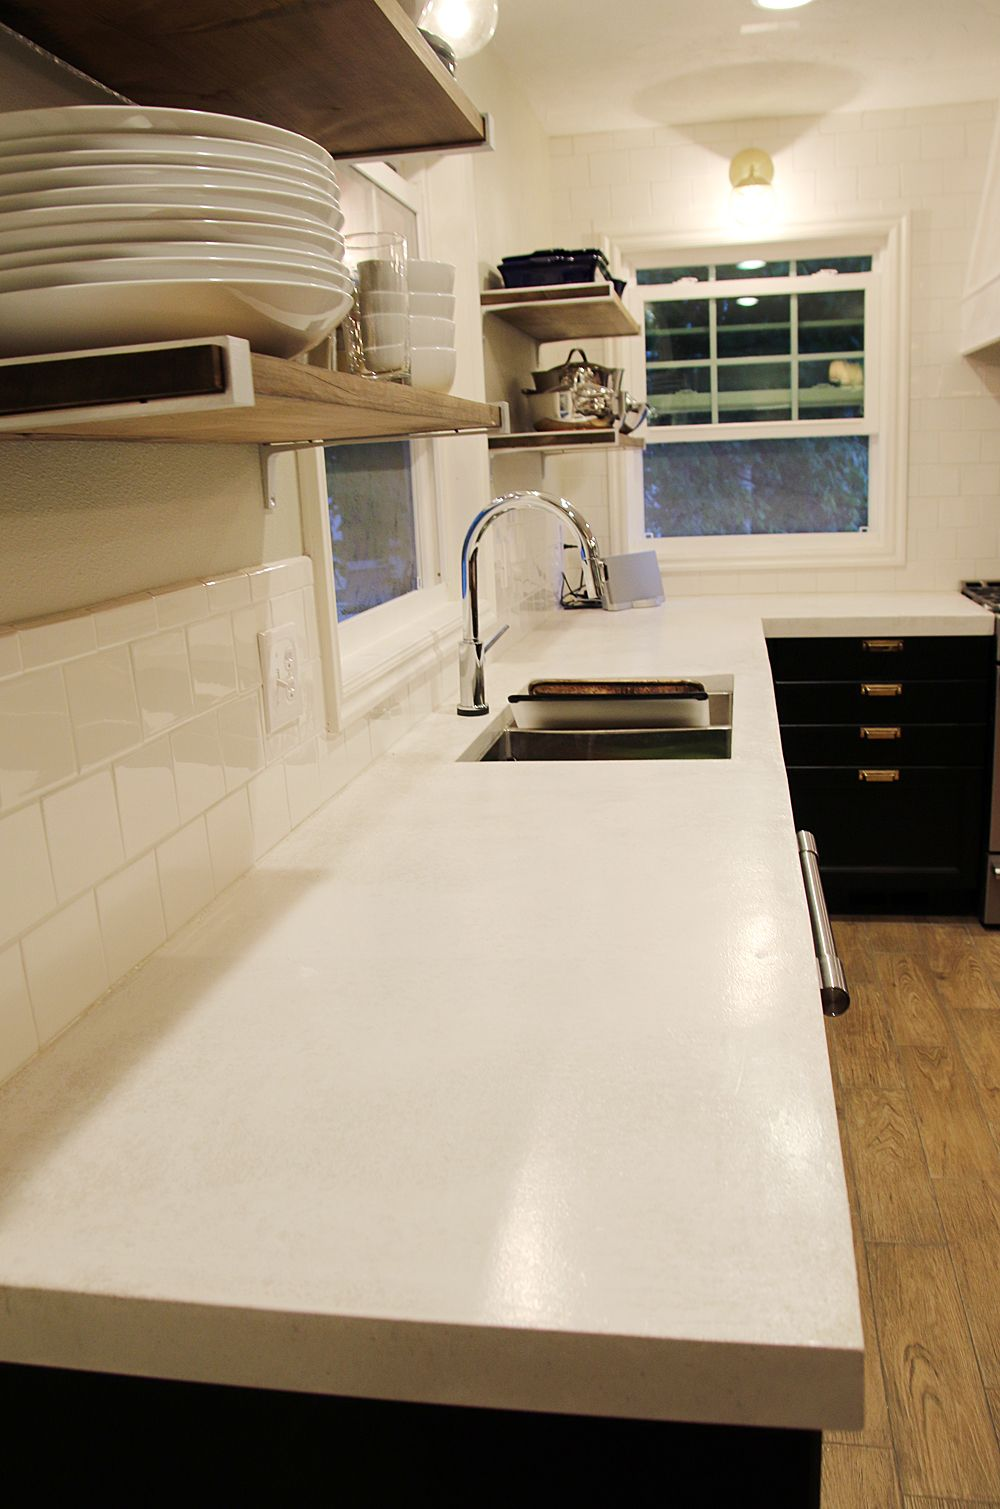 spaces guide concrete a to how rooms popular and for materials kitchen diy countertops best countertop